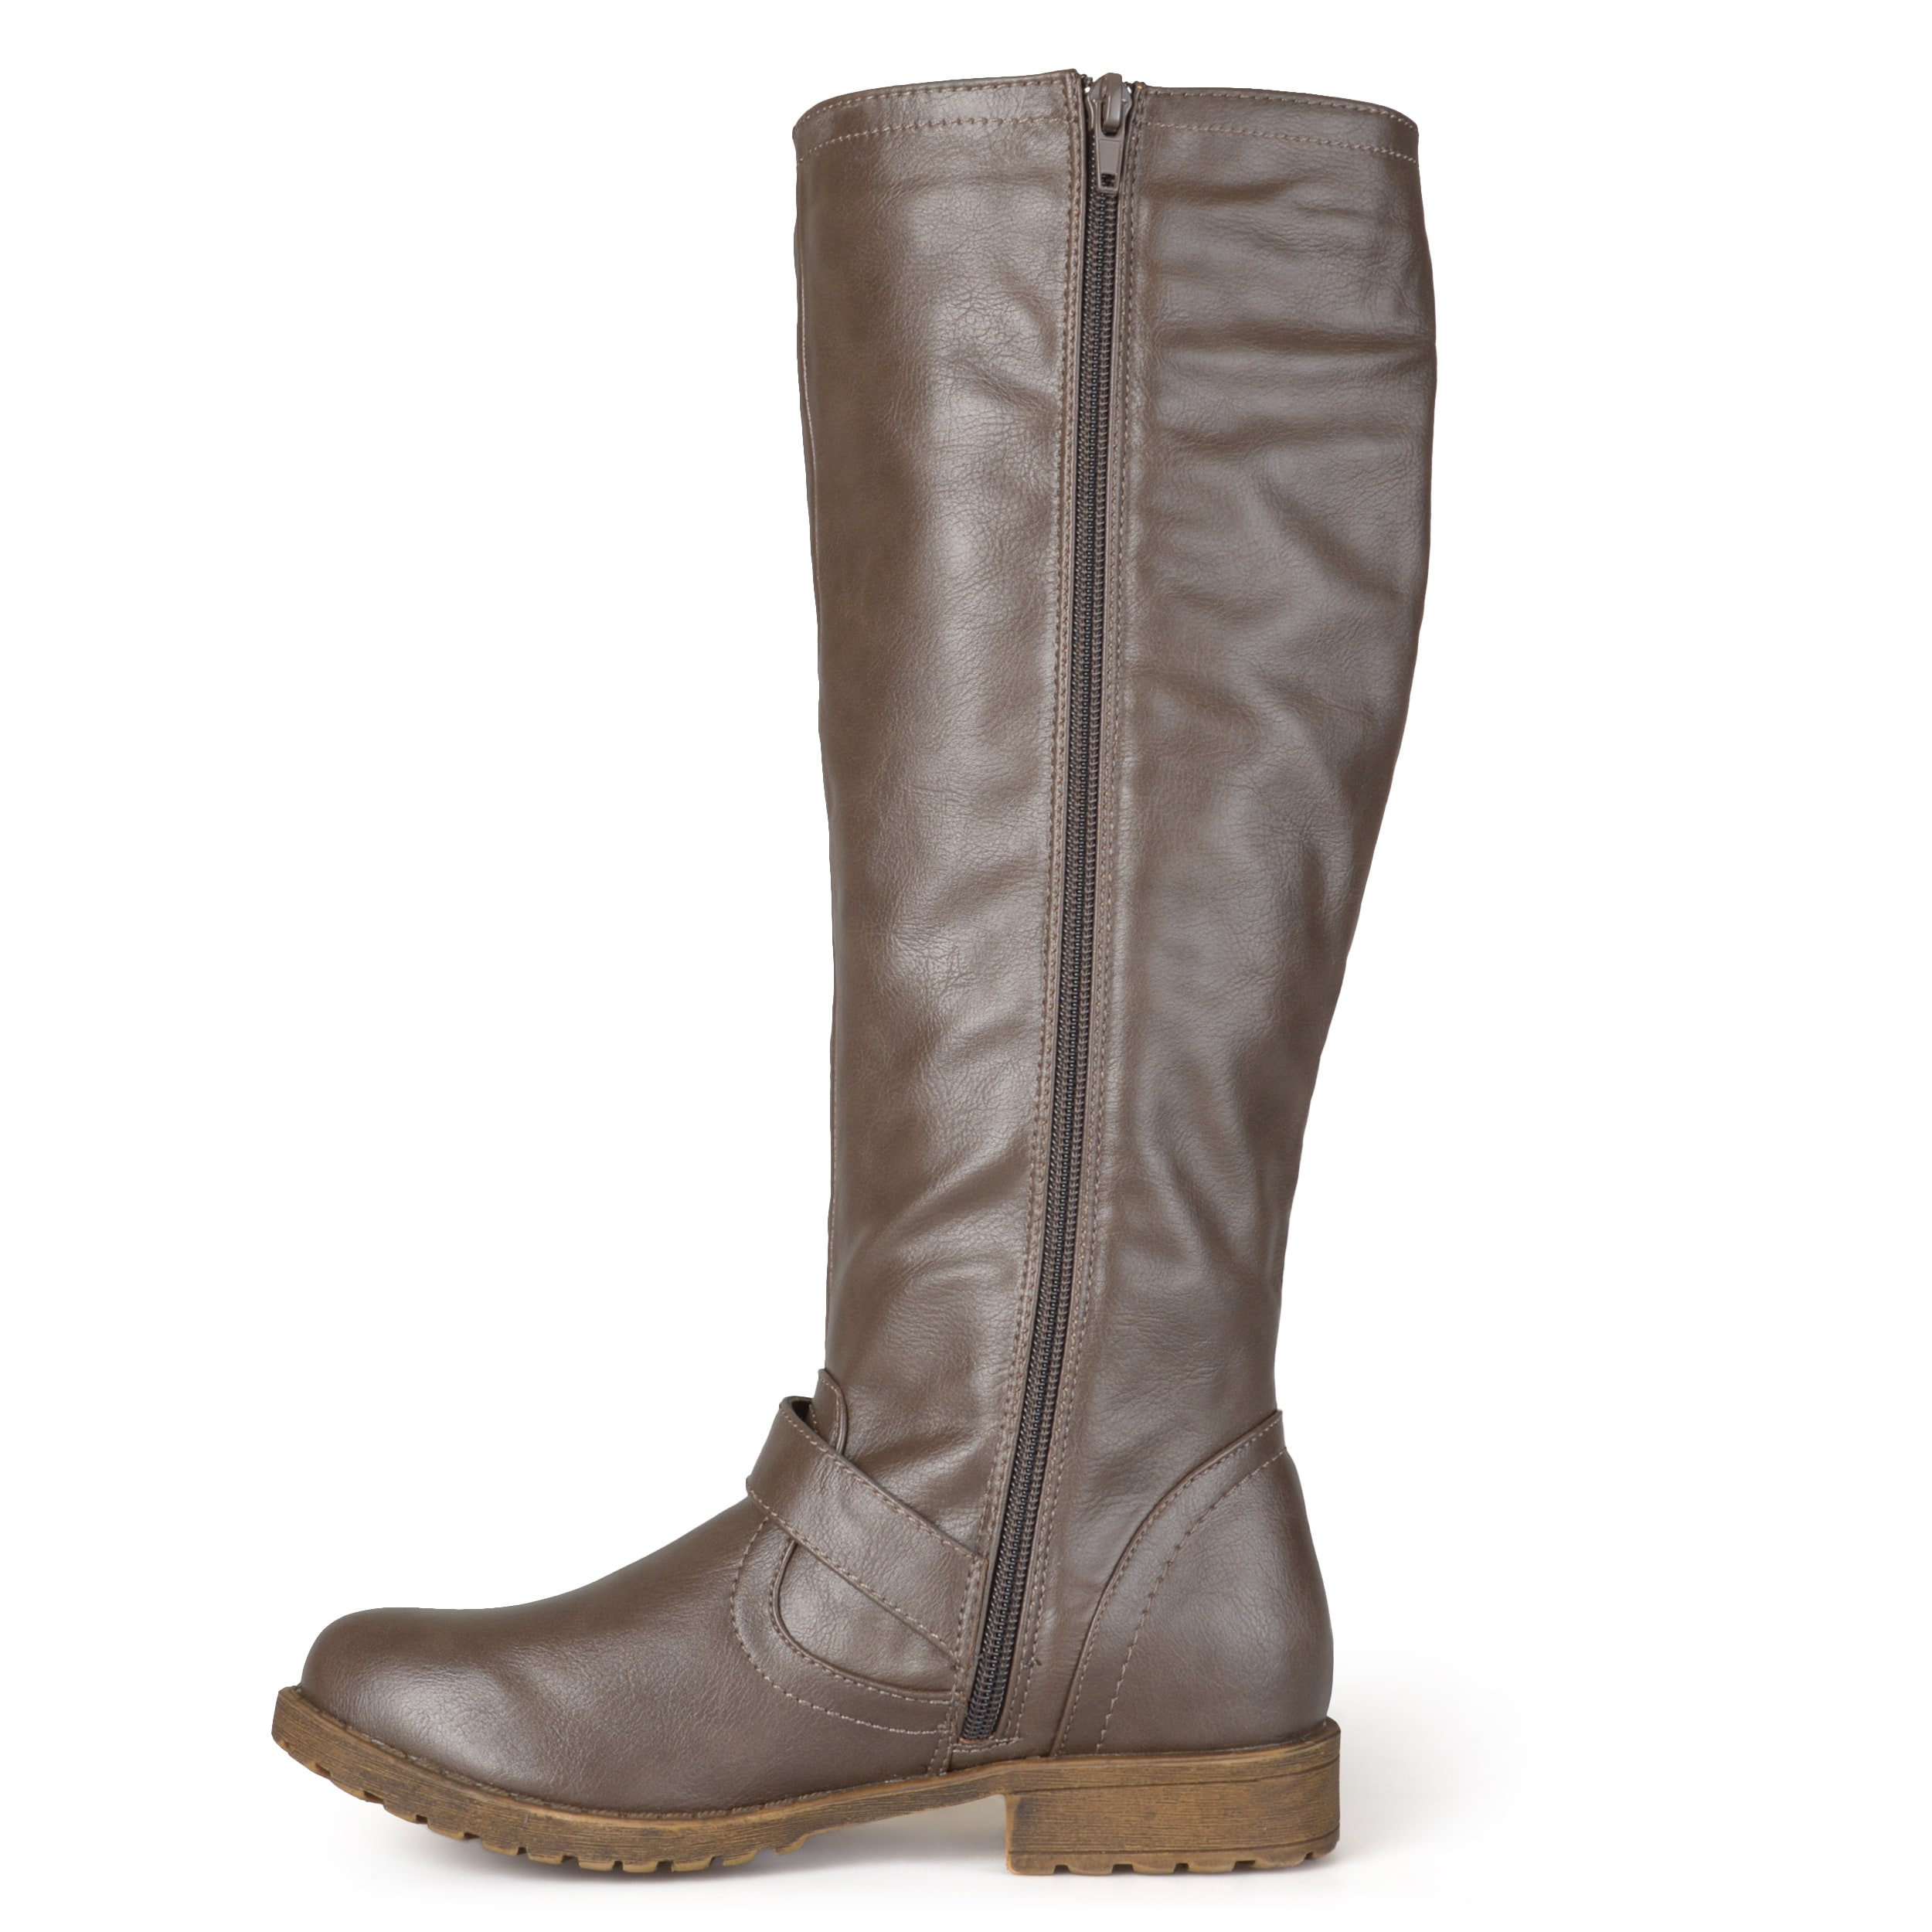 51c08abe877 Shop Journee Collection Women s  Tilt  Regular and Wide Calf Studded Zipper  Riding Boots - On Sale - Free Shipping Today - Overstock - 10511472